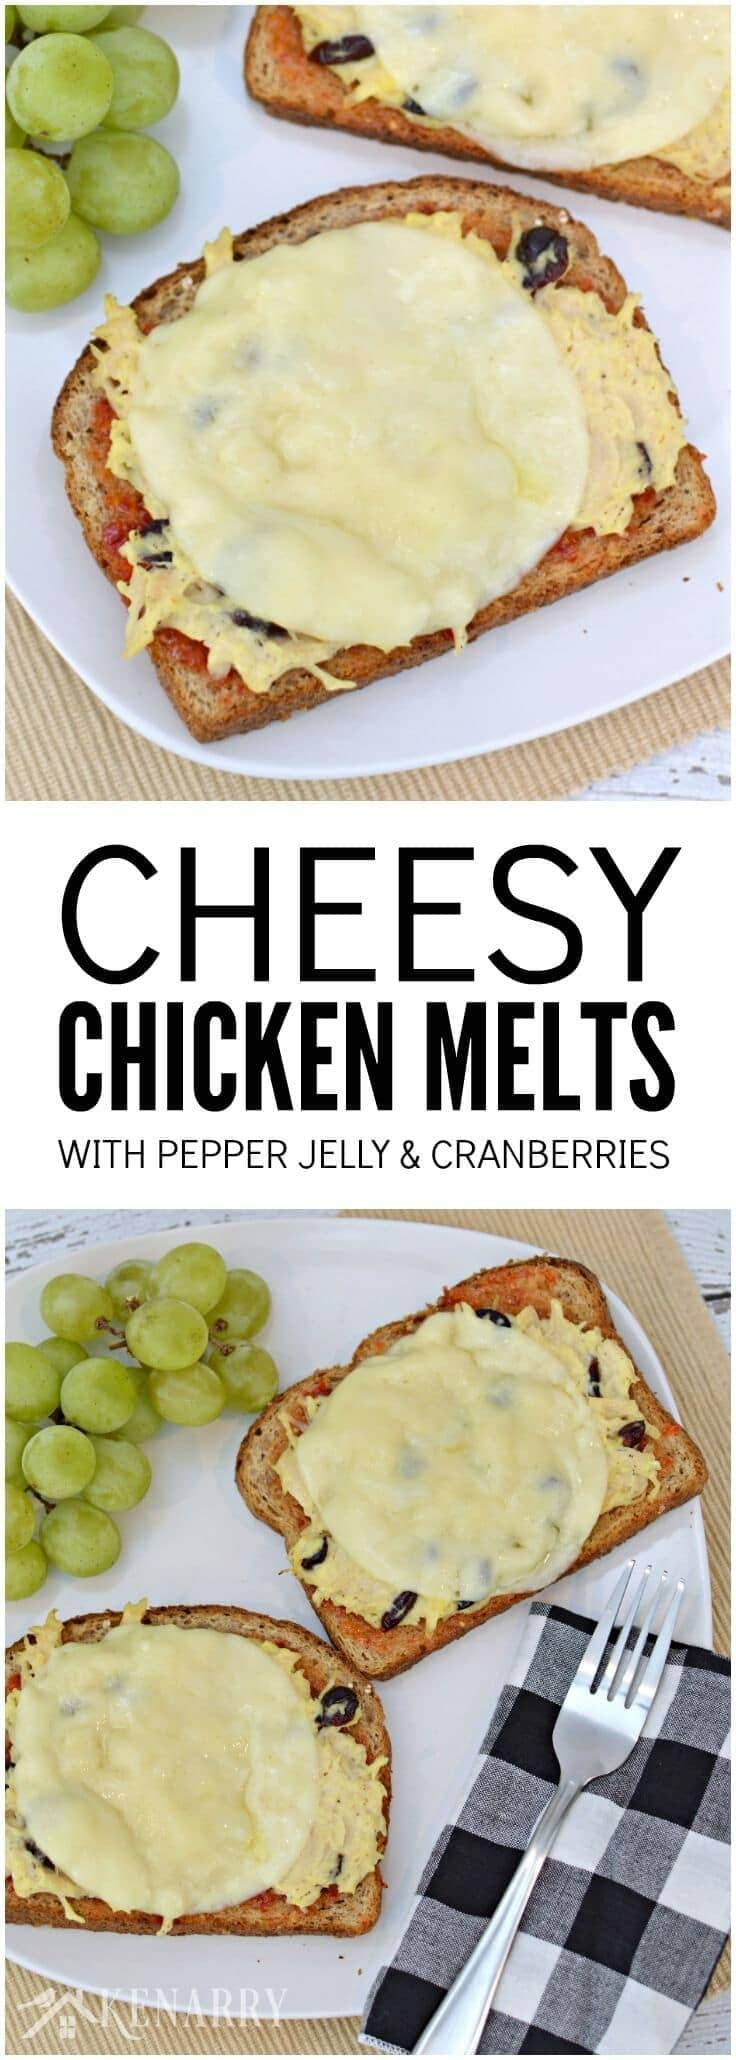 For an easy weeknight dinner idea, make this cheesy chicken melts recipe with canned chicken, red pepper jelly, dried cranberries and 100% real, natural sliced cheese from Sargento. #RealCheesePeople #ad